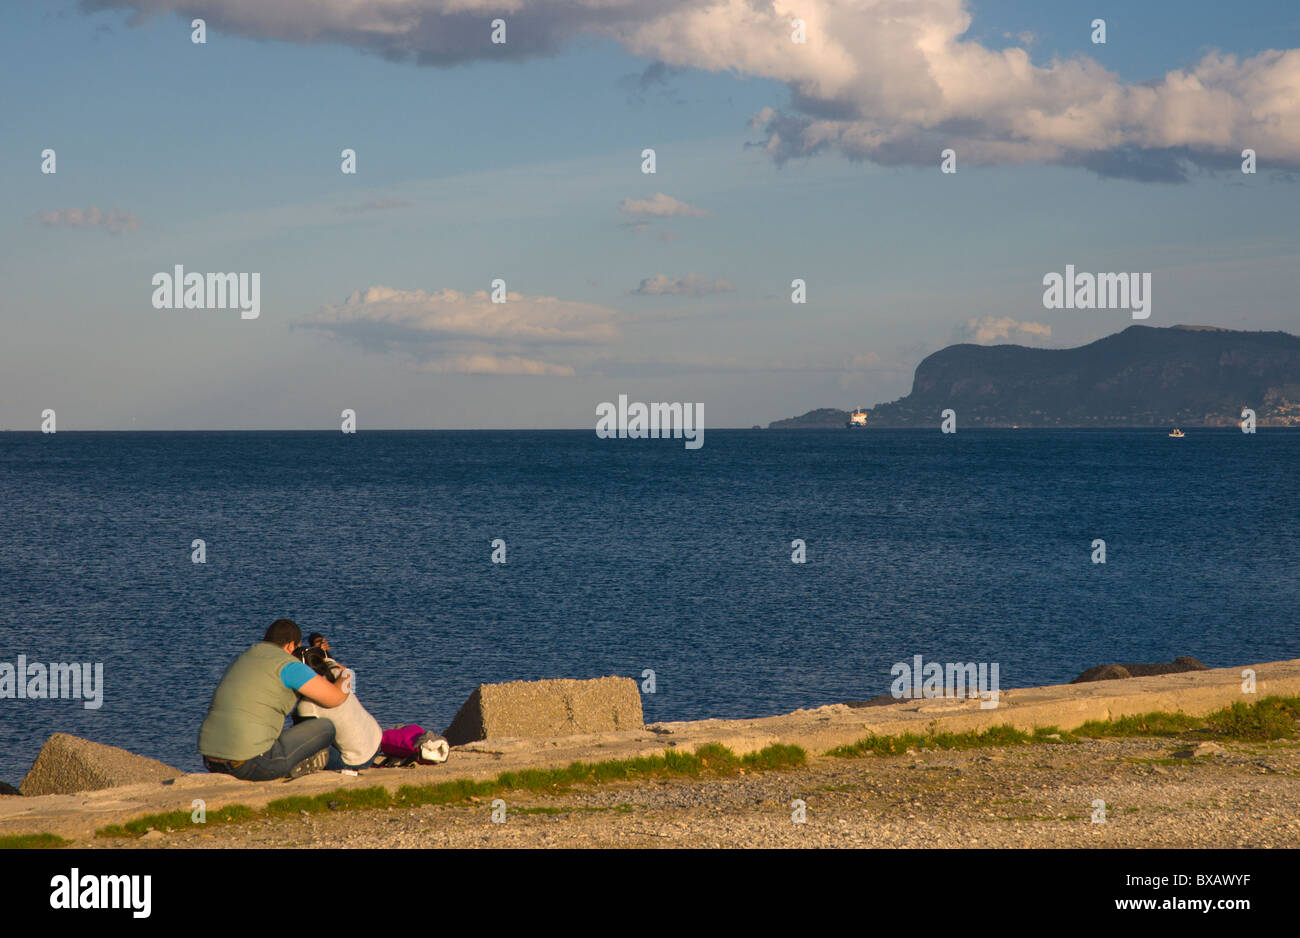 Couple at Terrazza a mare park by the sea Palermo Sicily Italy ...